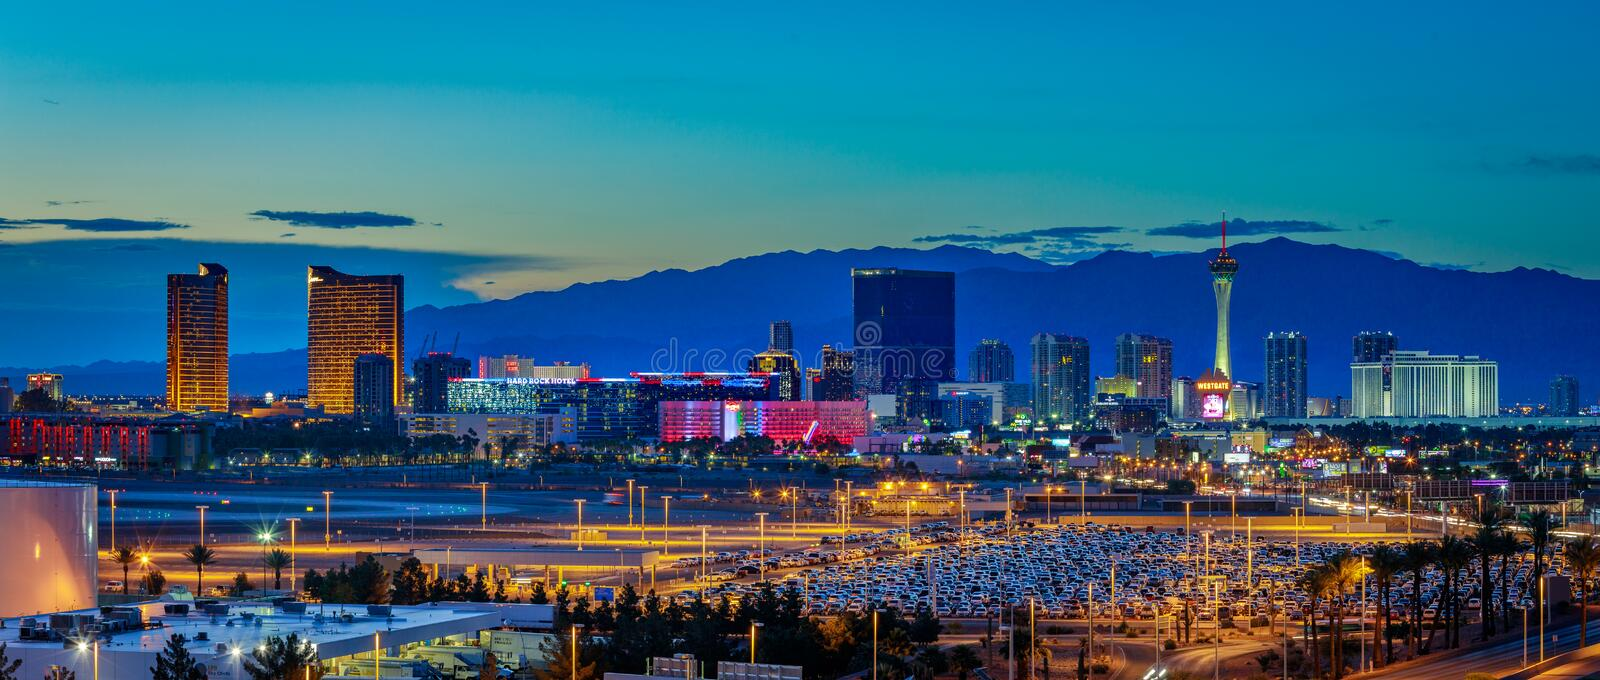 Skyline view at sunset of the famous Las Vegas Strip located in world class hotels and casinos, NV. Las Vegas, Nevada - May 28, 2018 : Skyline view at sunset of stock photography